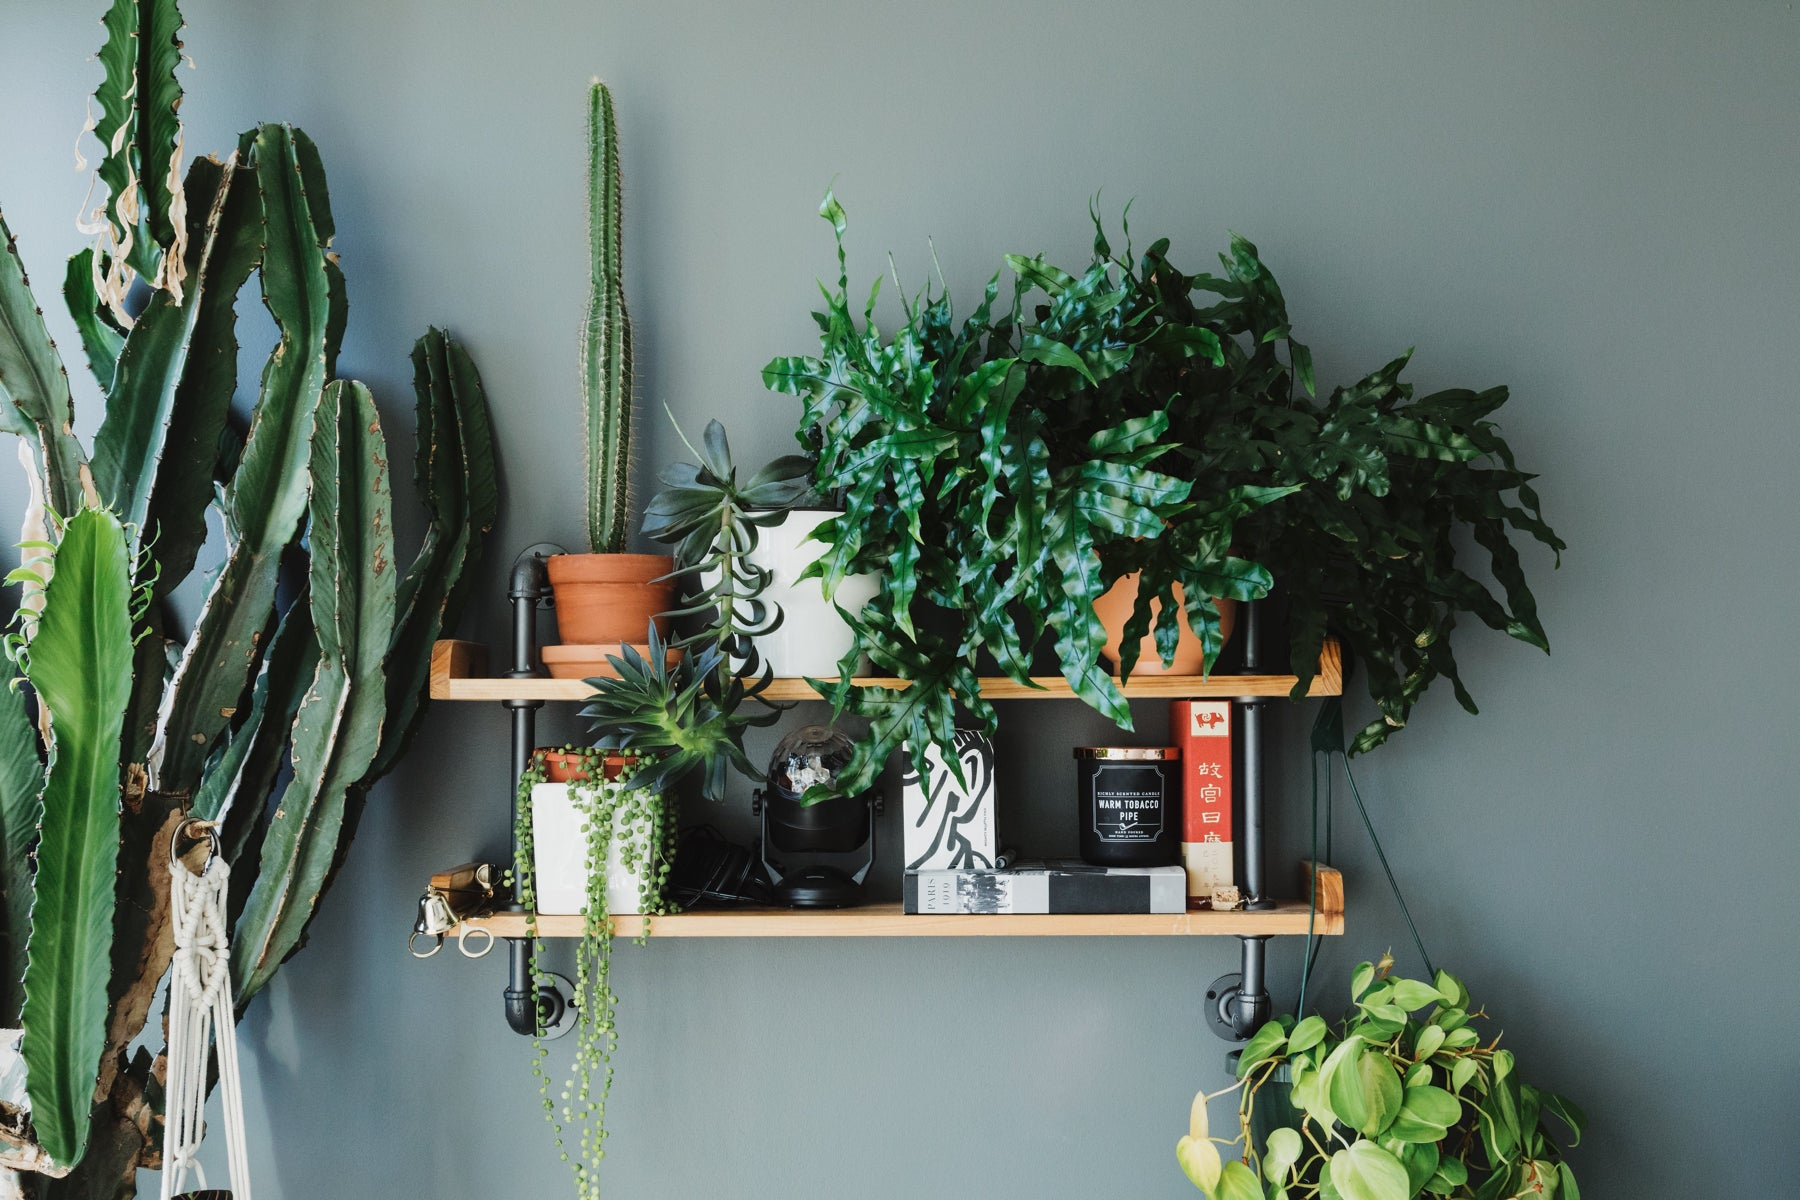 Plants lined up on a shelf on the wall